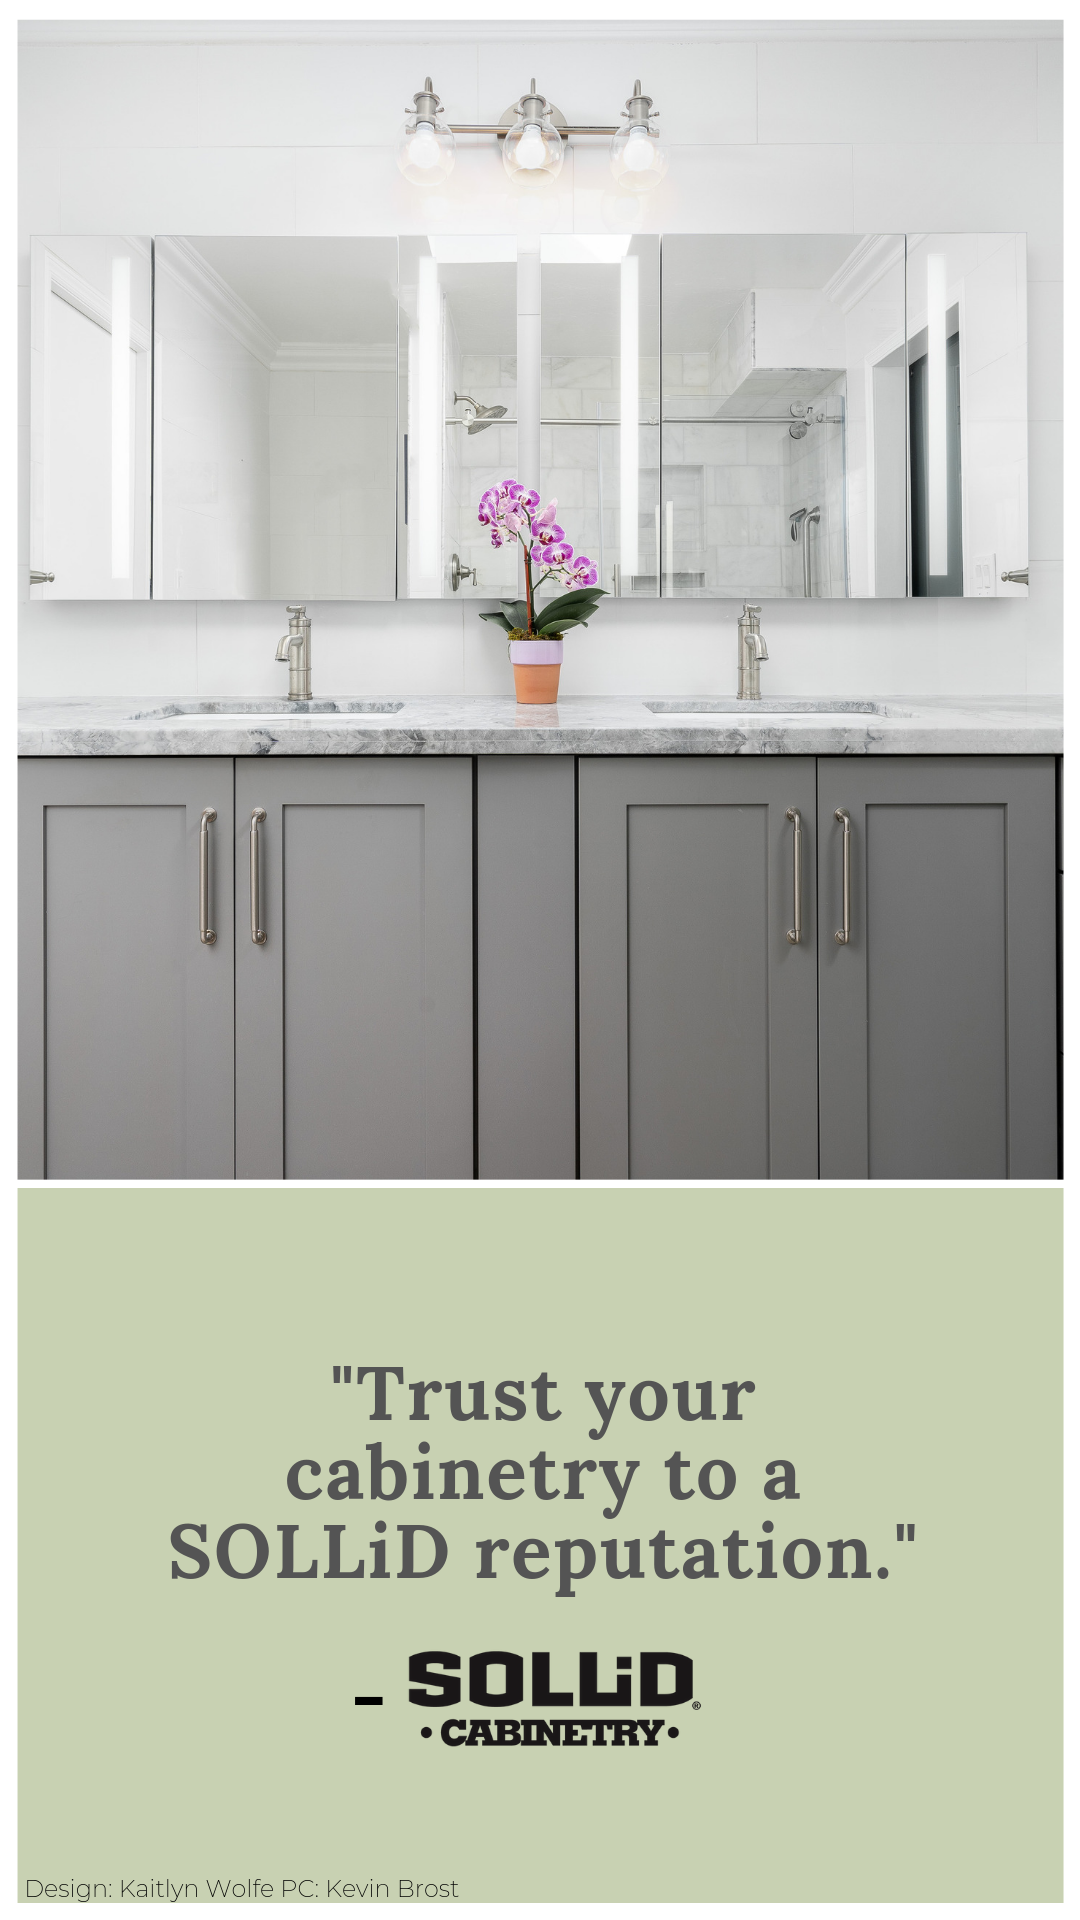 Sollid Cabinetry Offers Semi Customized Kitchen Cabinets Bathroom Vanities And Built Ins With Images Custom Bathroom Kitchen Cabinets In Bathroom Custom Bathroom Vanity